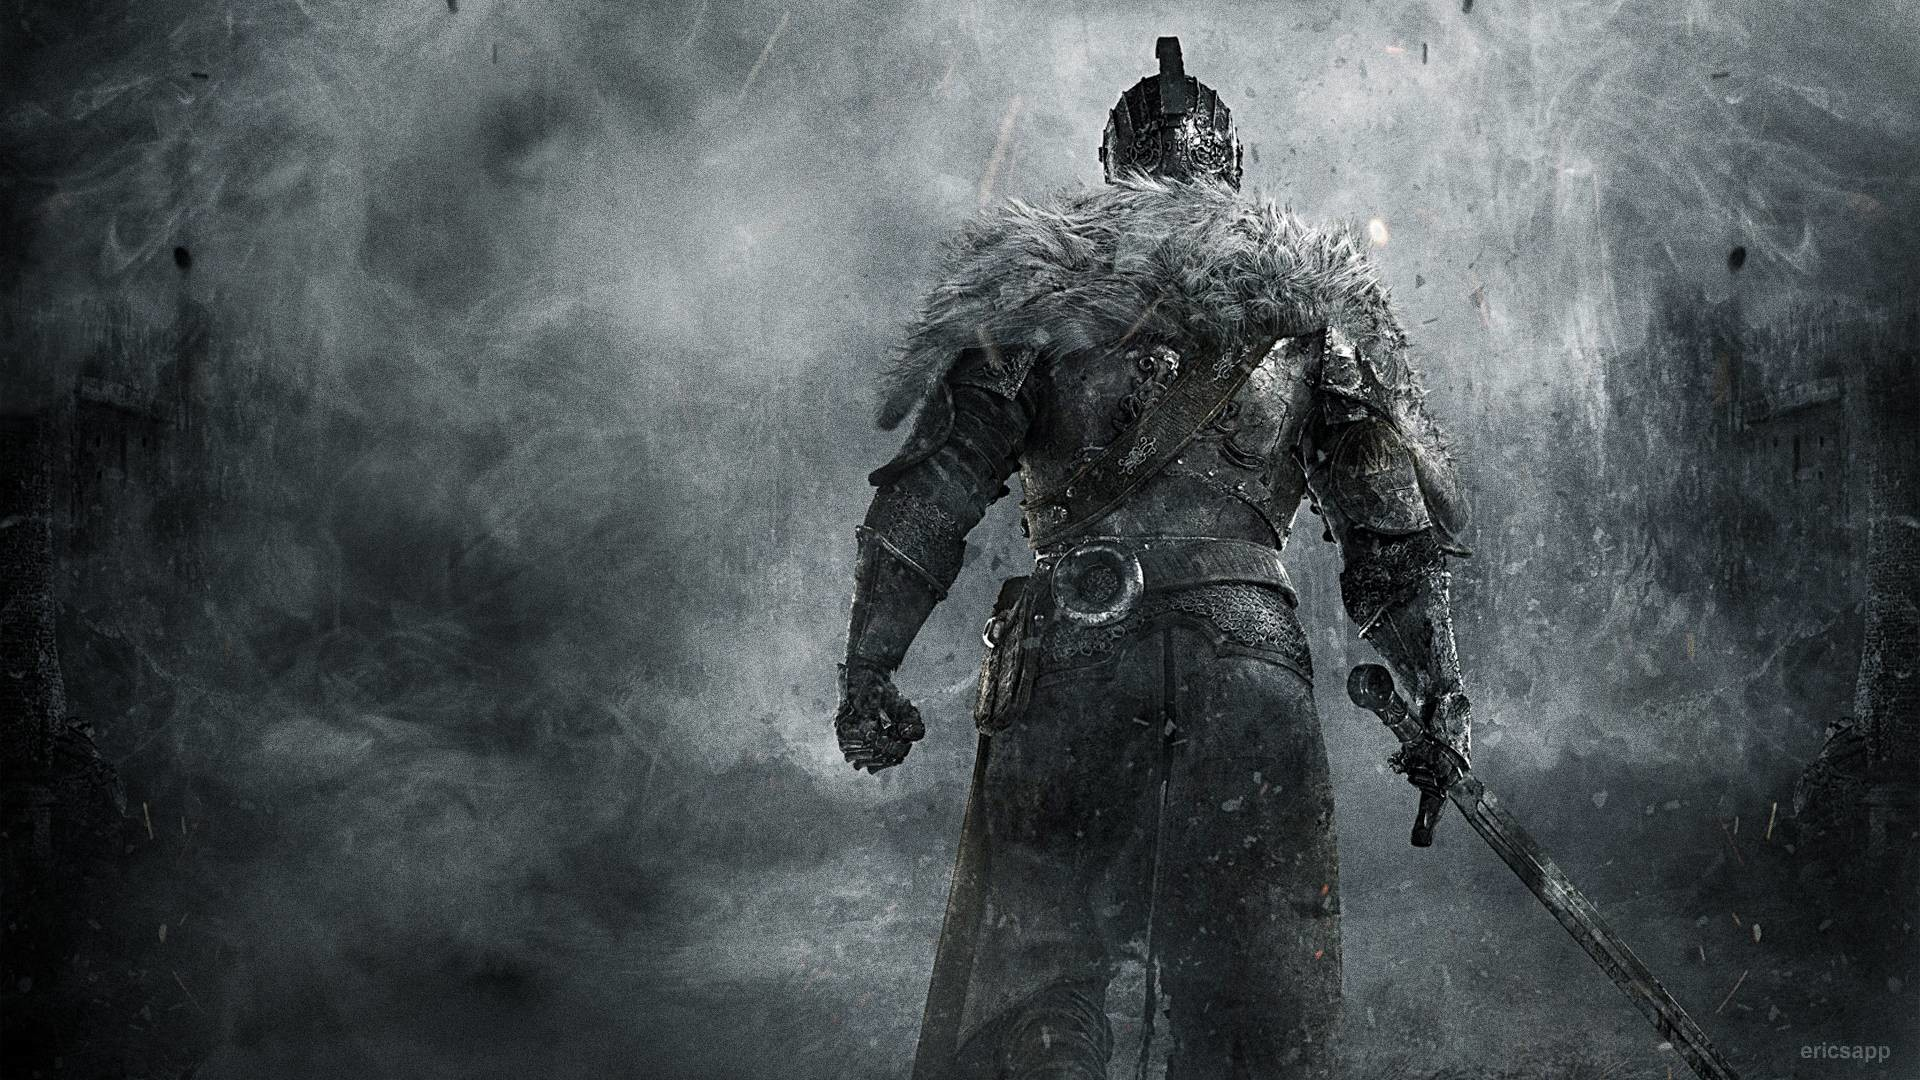 Dark Souls 2 Wallpaper Group With 68 Items Data-src - Dark Souls 2  Wallpaper 4k - 1920x1080 - Download HD Wallpaper - WallpaperTip